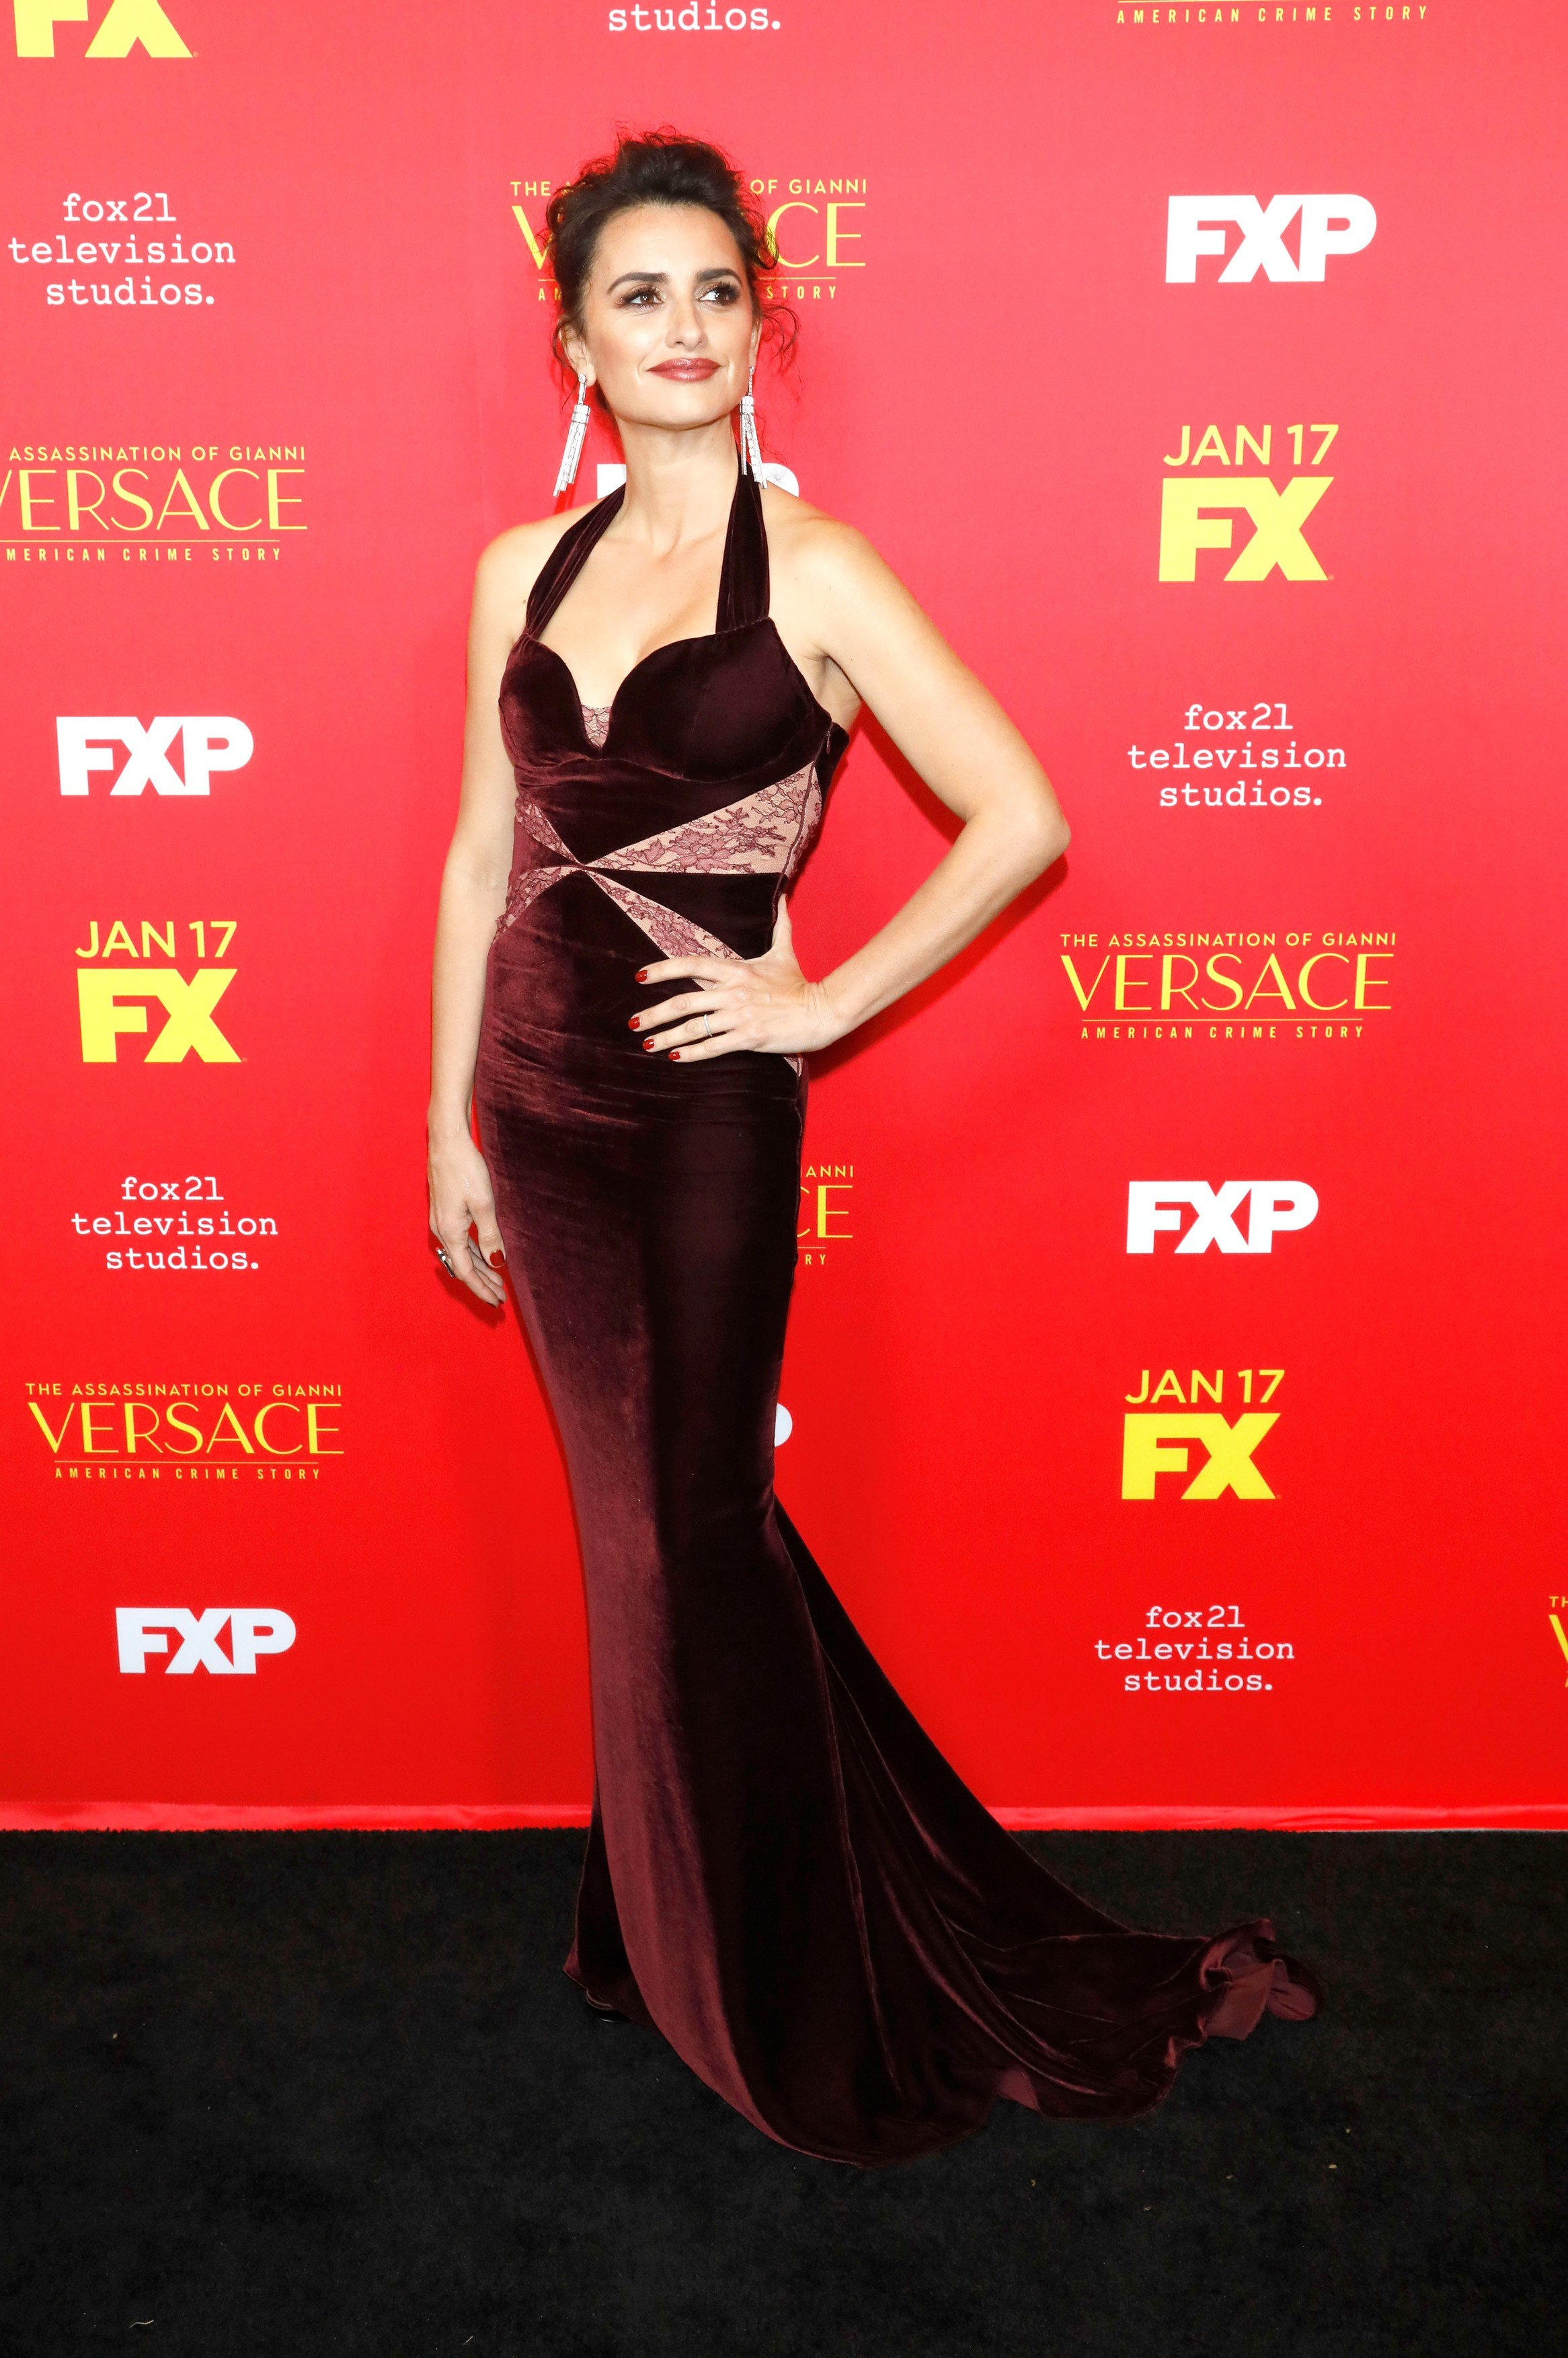 January 9, 2018 - Los Angeles, Kalifornien, USA - Penelope Cruz bei der Premiere der FX TV-Serie 'The Assassination of Gianni Versace: American Crime Story' im ArcLight Hollywood. Los Angeles, 08.01.2018, Image: 359648781, License: Rights-managed, Restrictions: , Model Release: no, Credit line: Profimedia, Zuma Press - Entertaiment